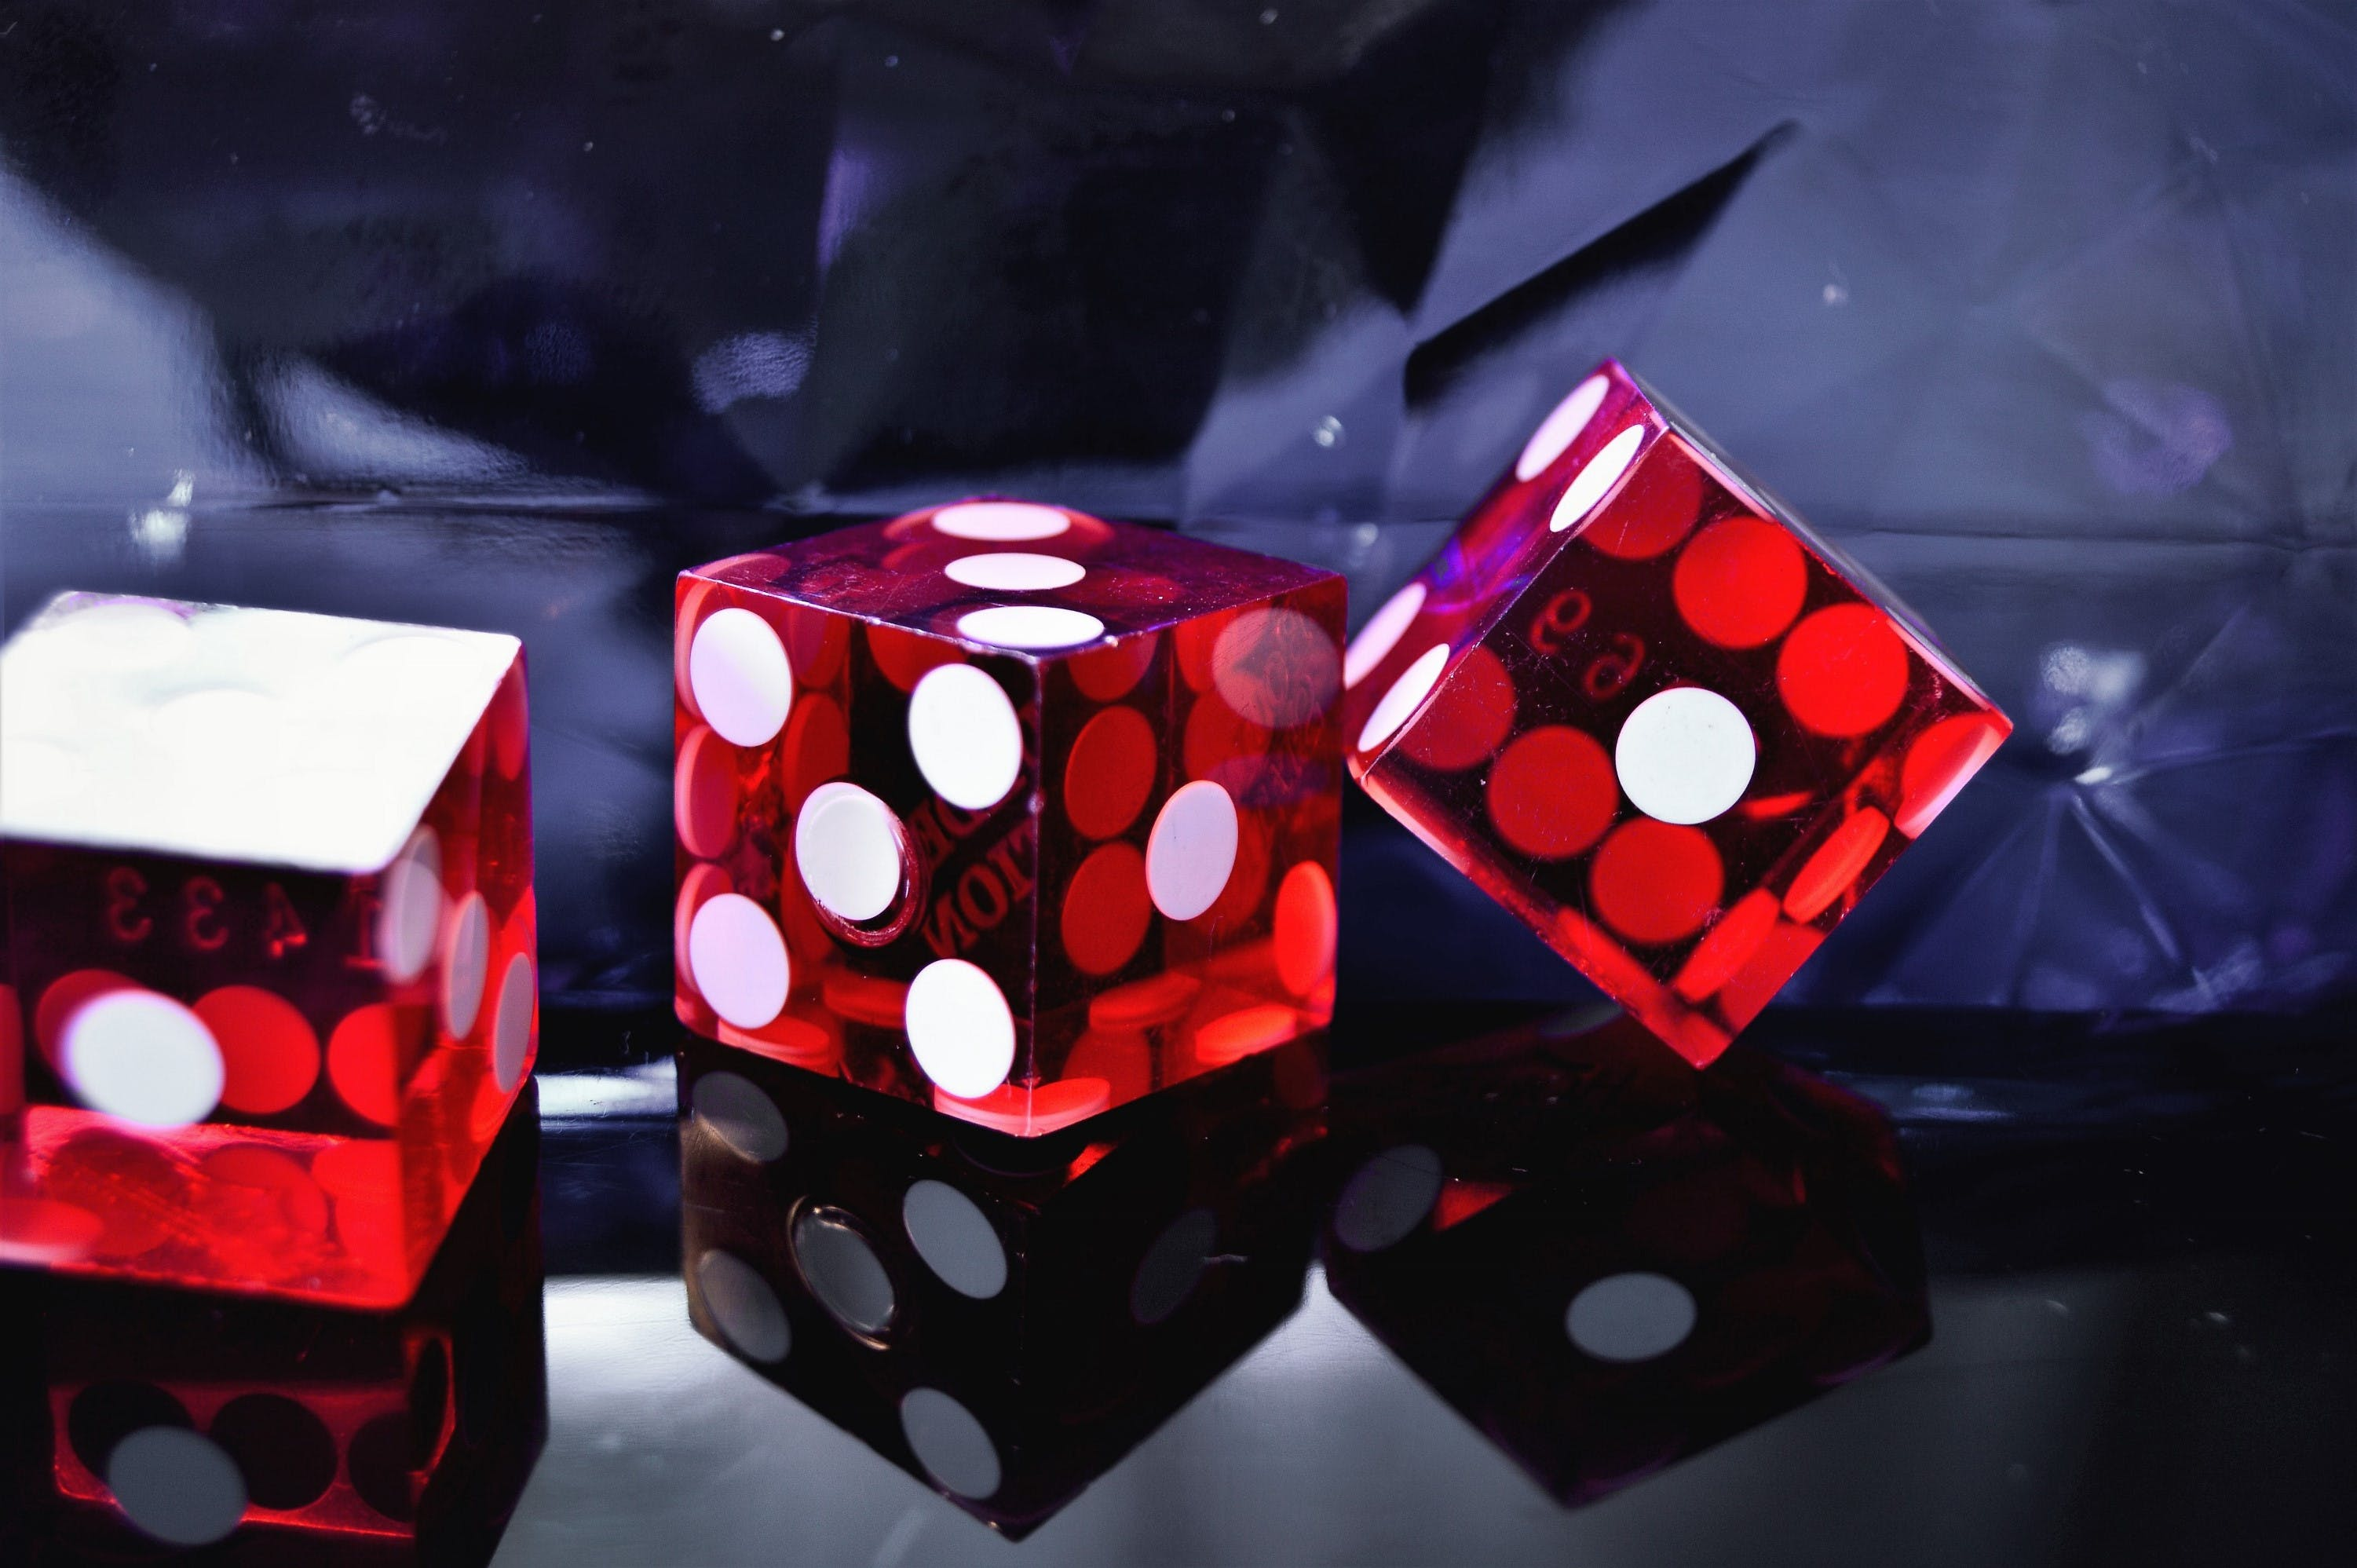 Free stock photo of red, glass, casino, transparent